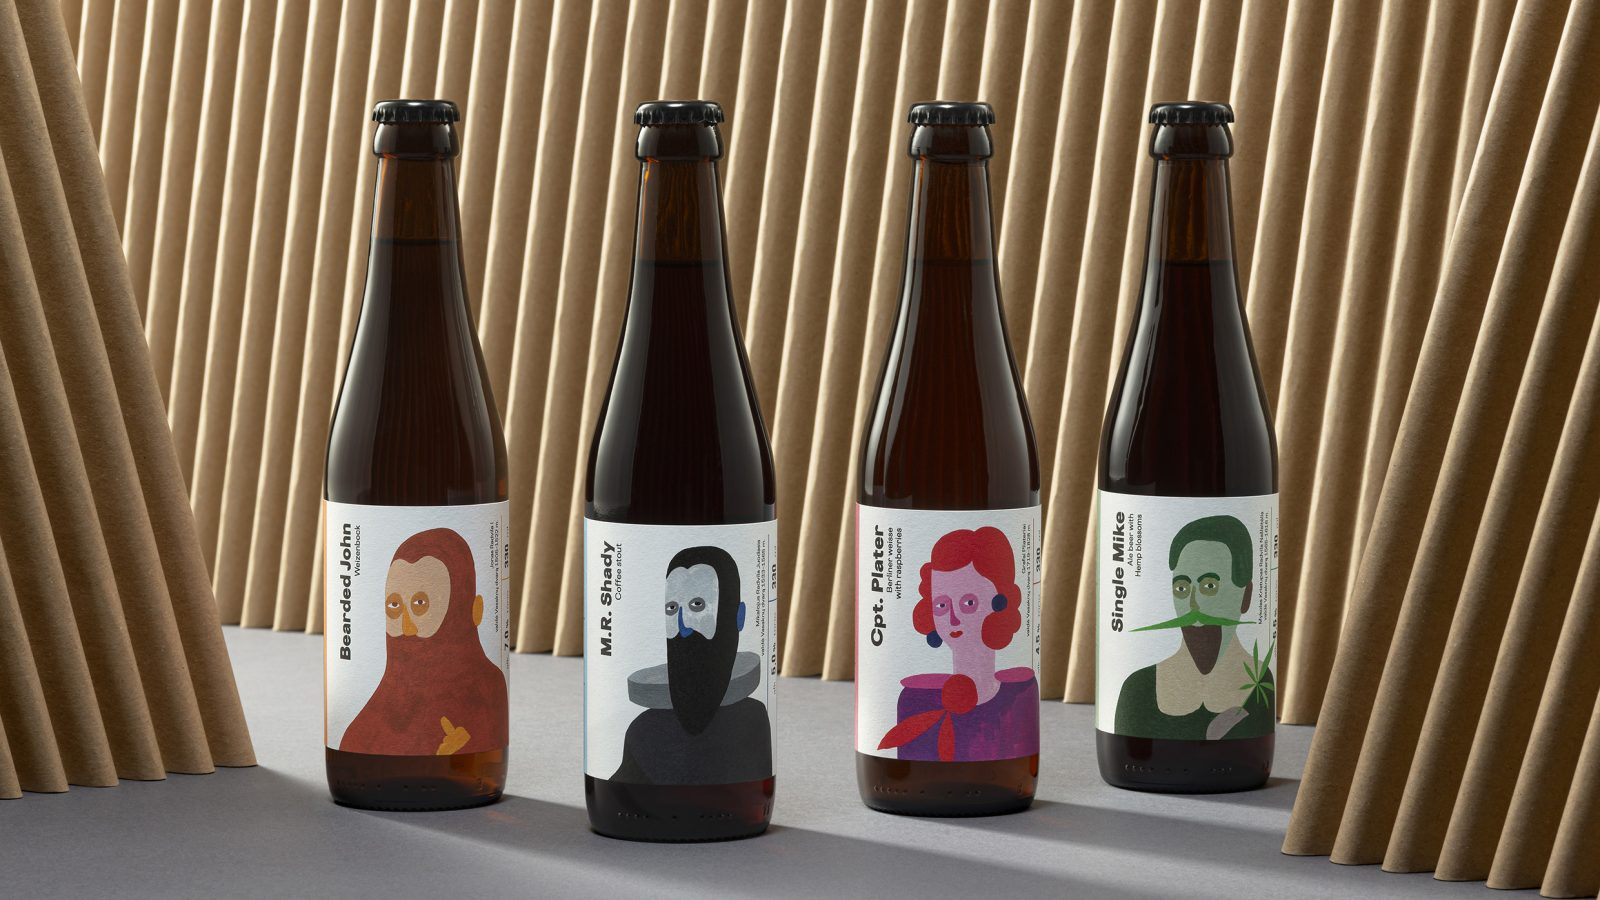 Hand-Painted Labels for Vasaknai Craft Beer by FOLK Design Agency